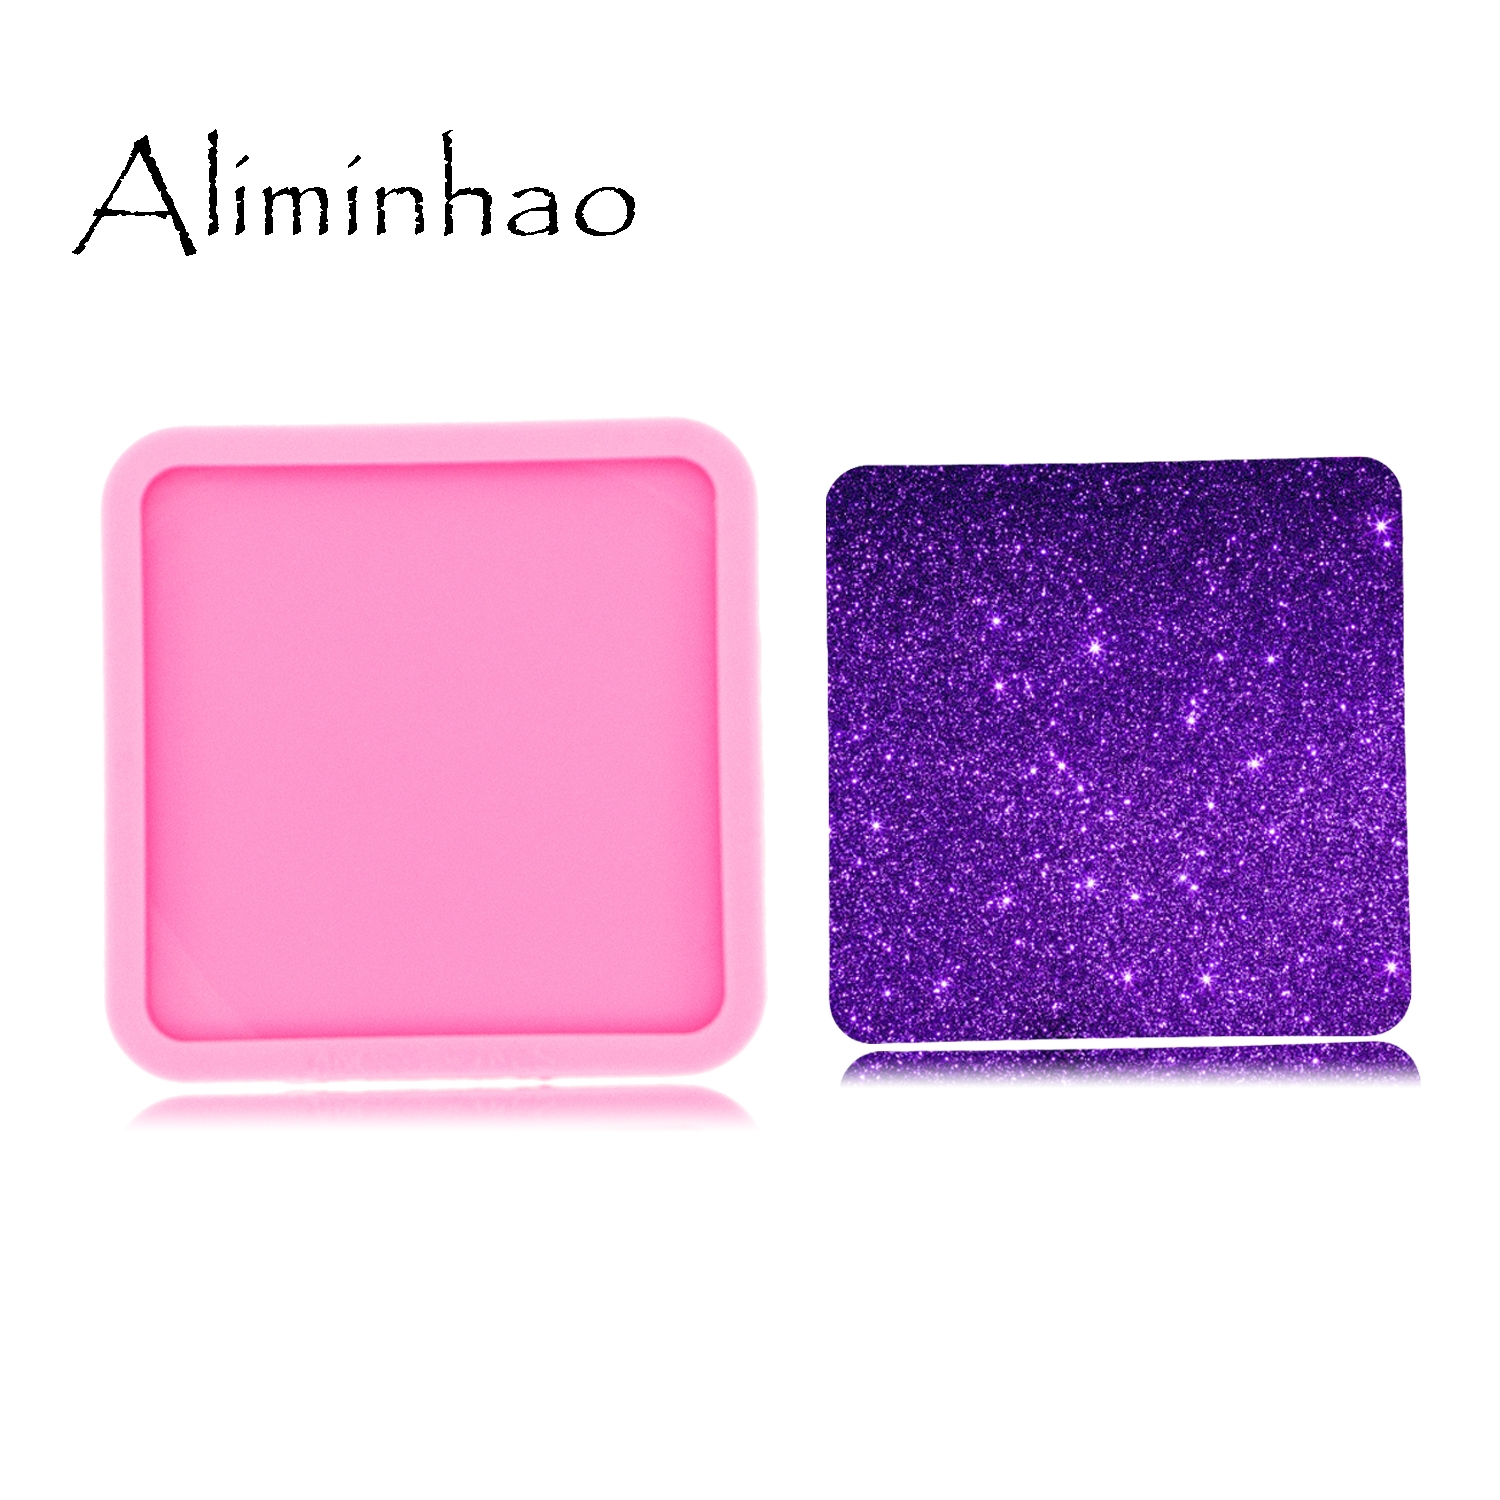 DY0272 Shiny High Quality 8cm=3.14inch Square Shape Silicone Tray Molds Epoxy Resin DIY Geode Coaster Agate Resin Mold